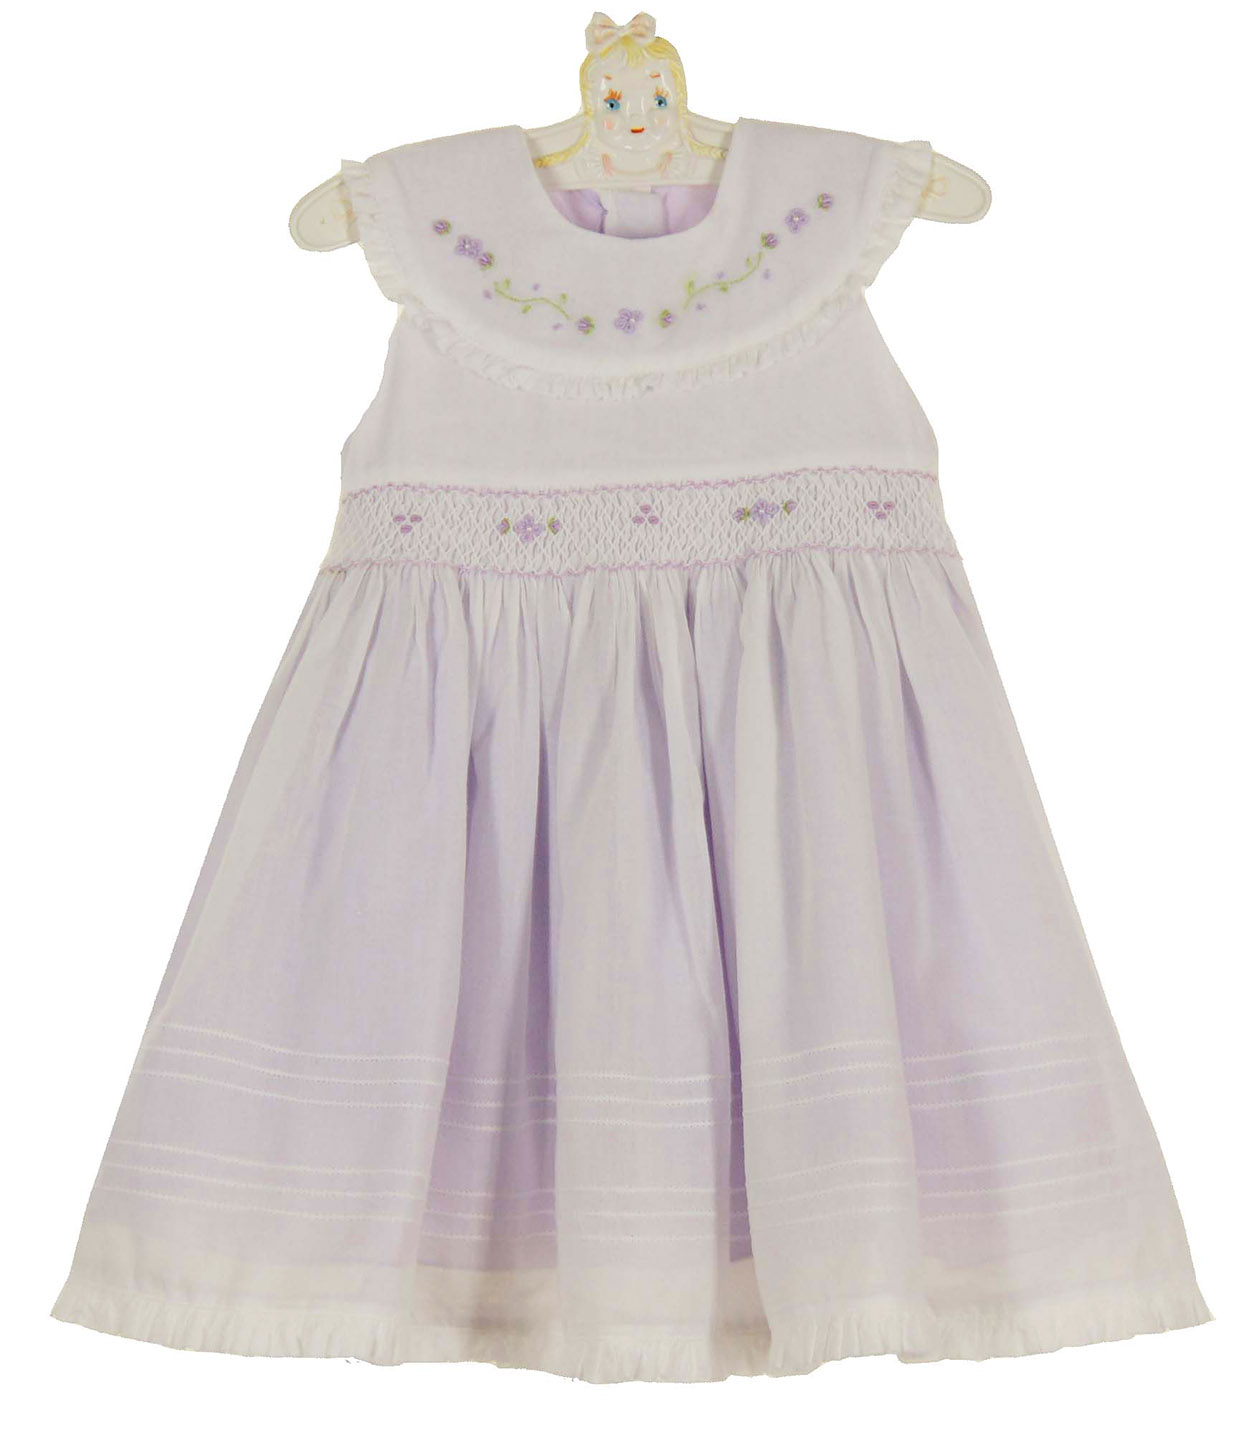 Willbeth Lavender Smocked Dress With White Voile Overlay And